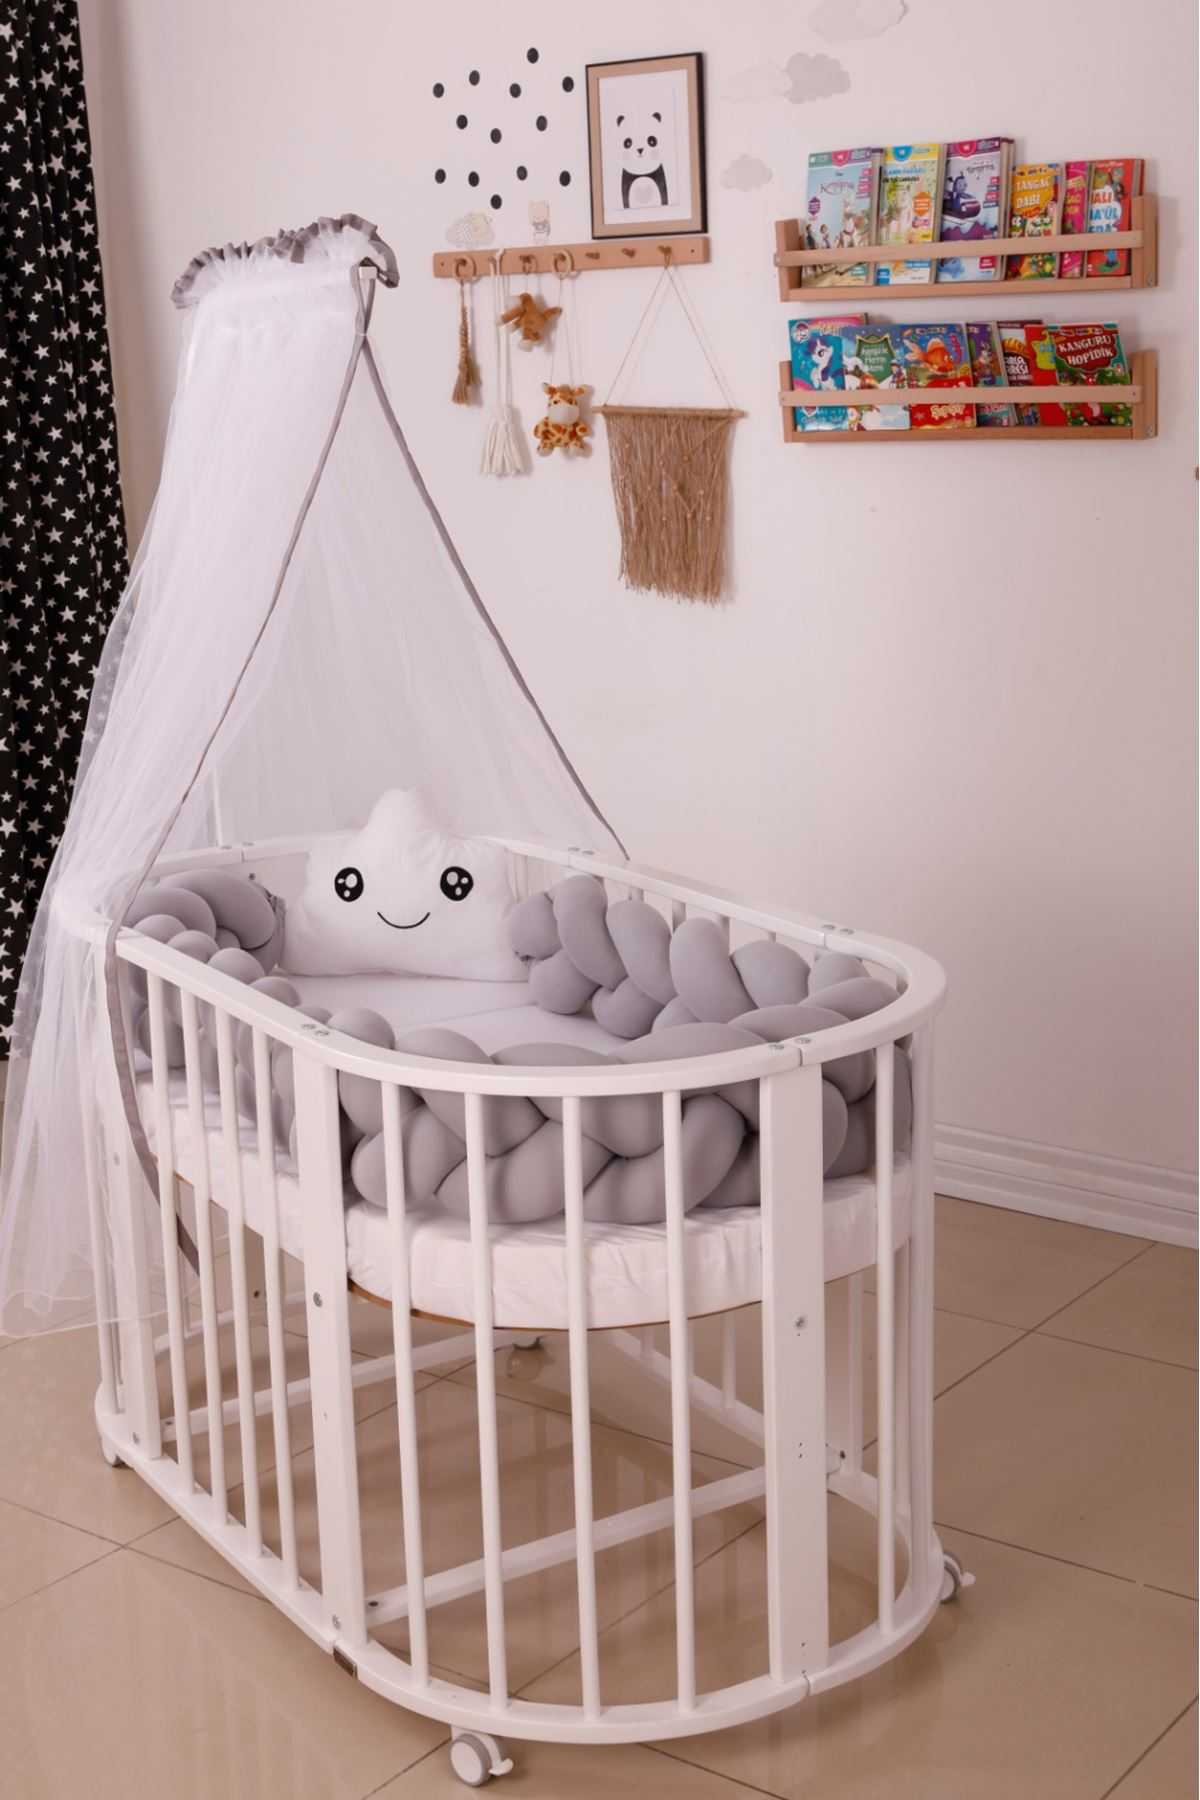 Cream Lacy Graded Natural Bed Baby Cot